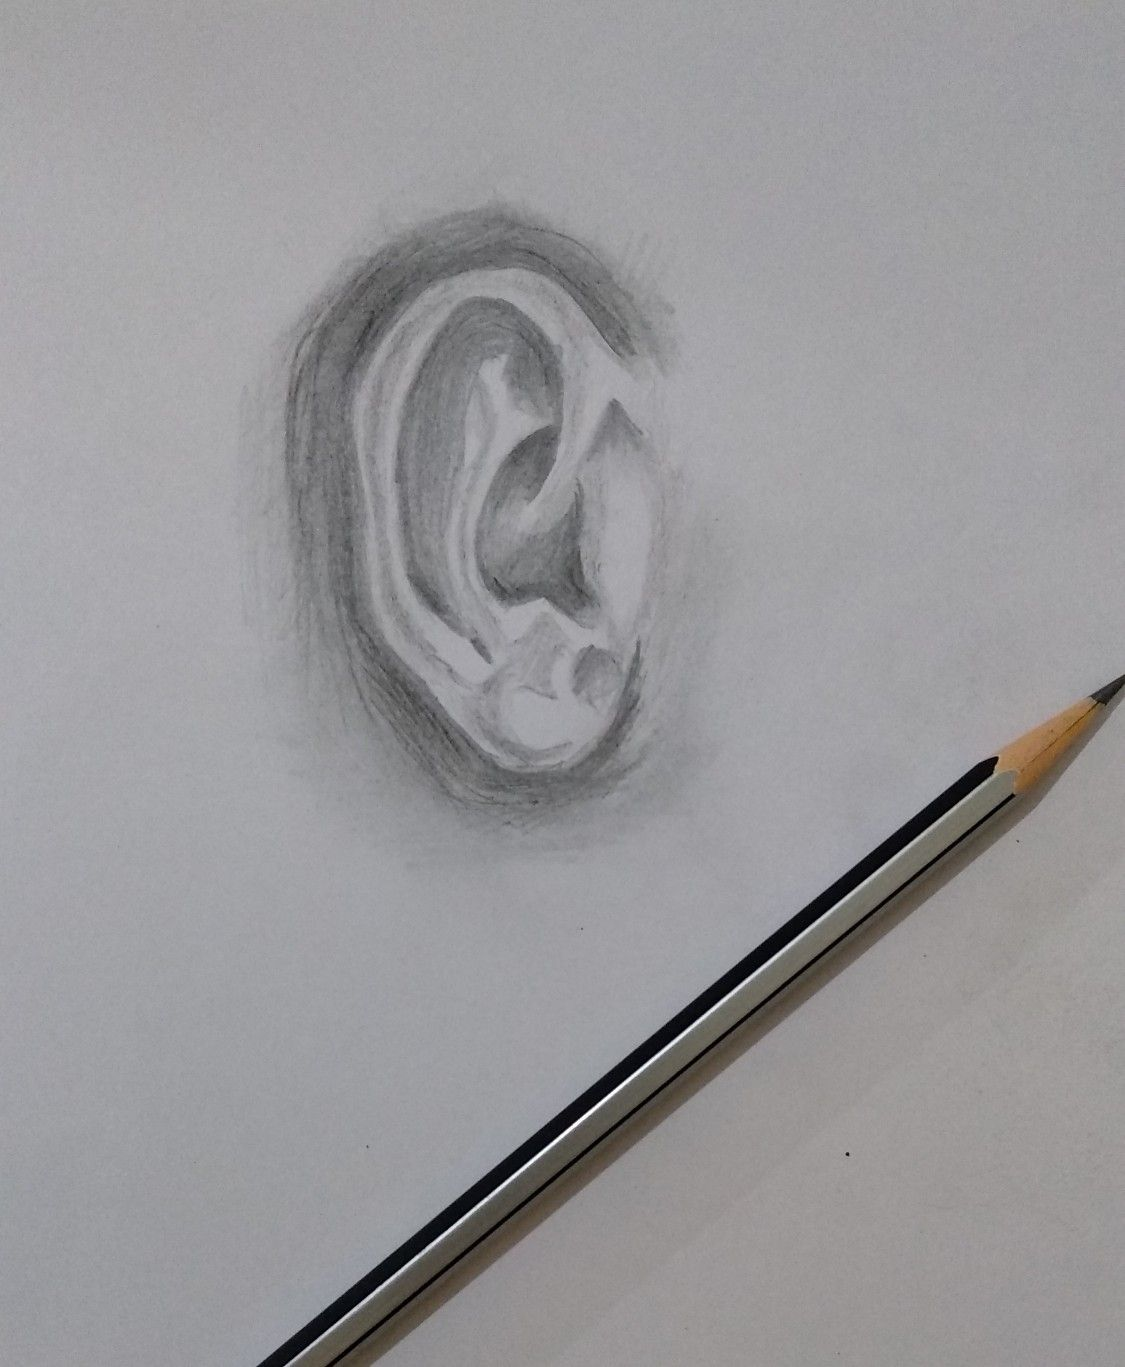 realistic ear pencil art pencil sketches drawings how to ...